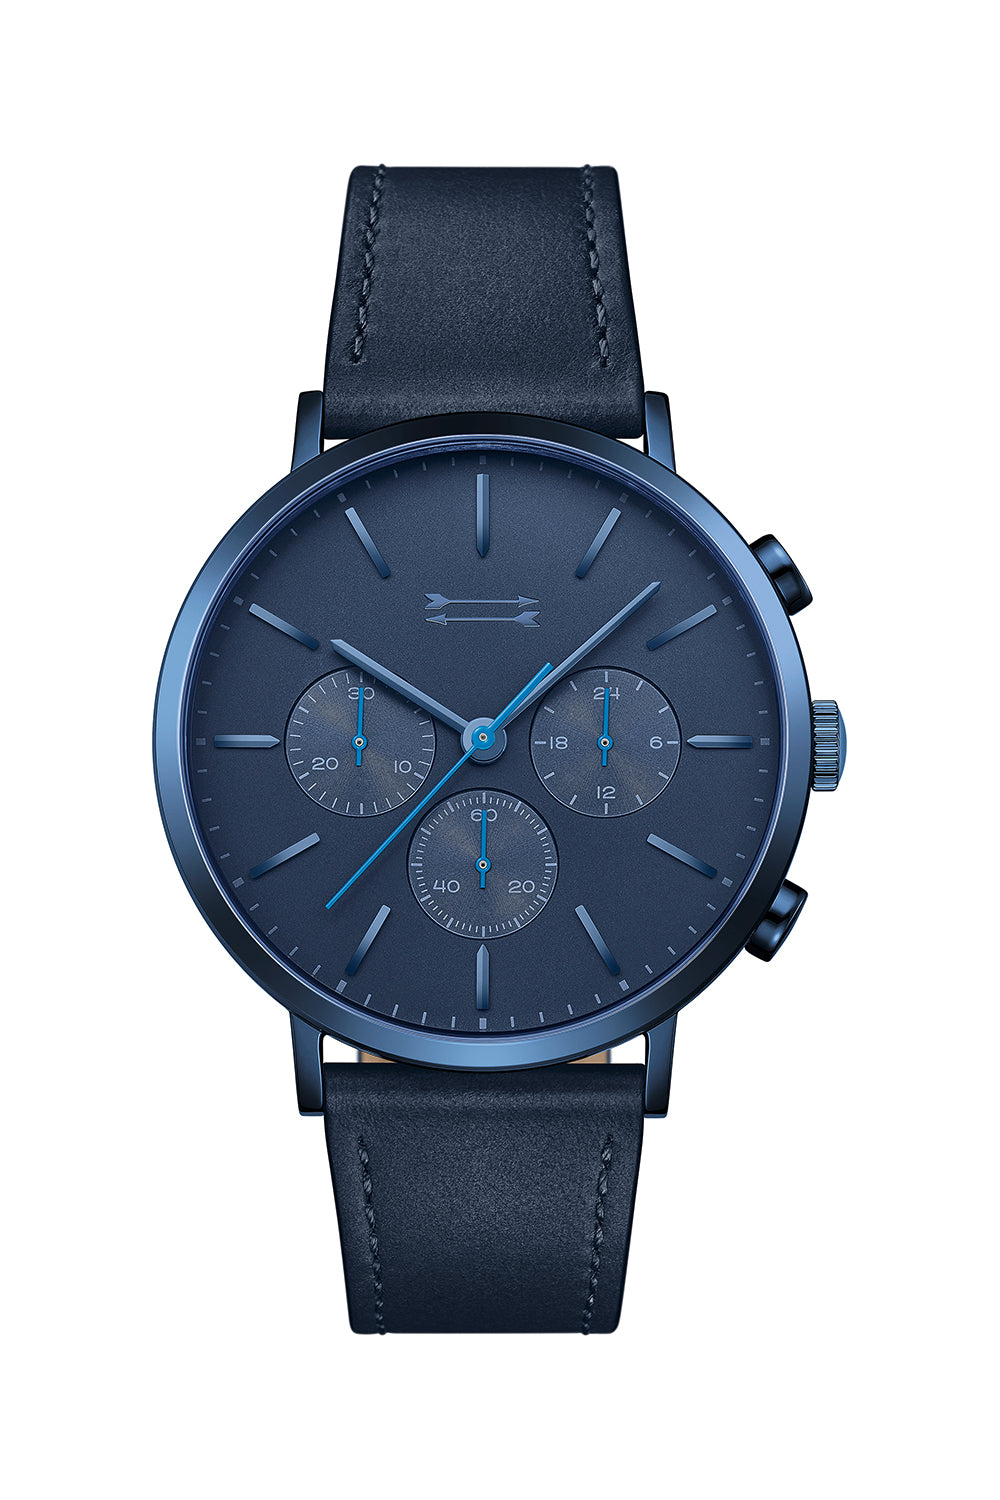 Uri-Minkoff Griffith Blue Tone Leather Watch, 43MM